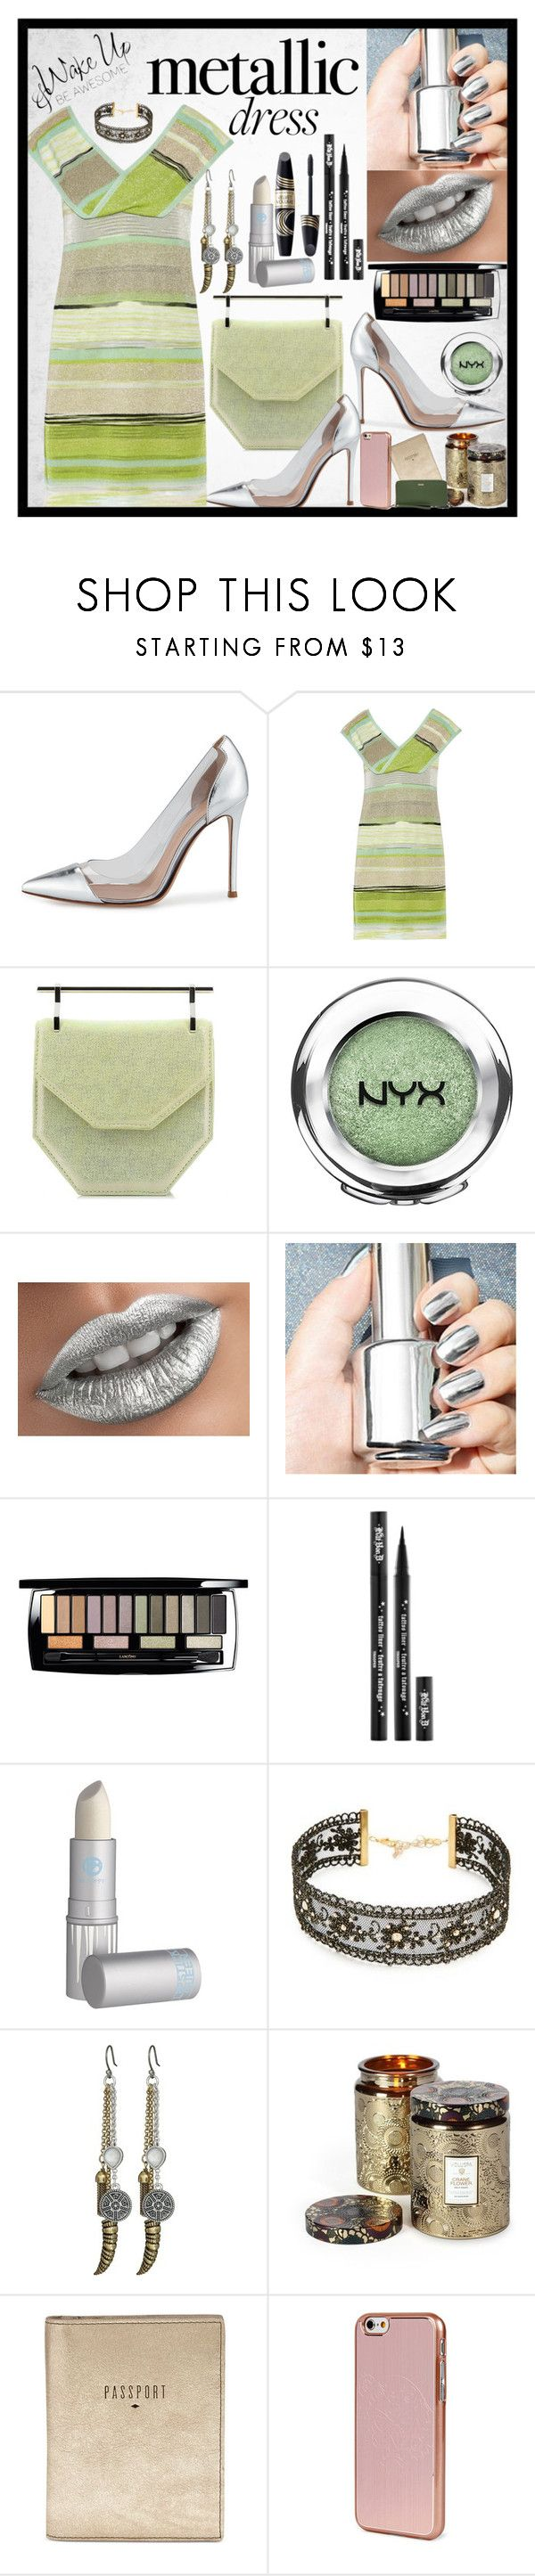 """Metallic Dress"" by fantasiegirl ❤ liked on Polyvore featuring Gianvito Rossi, Missoni, M2Malletier, NYX, Lancôme, Kat Von D, Max Factor, Lipstick Queen, Chan Luu and Lucky Brand"